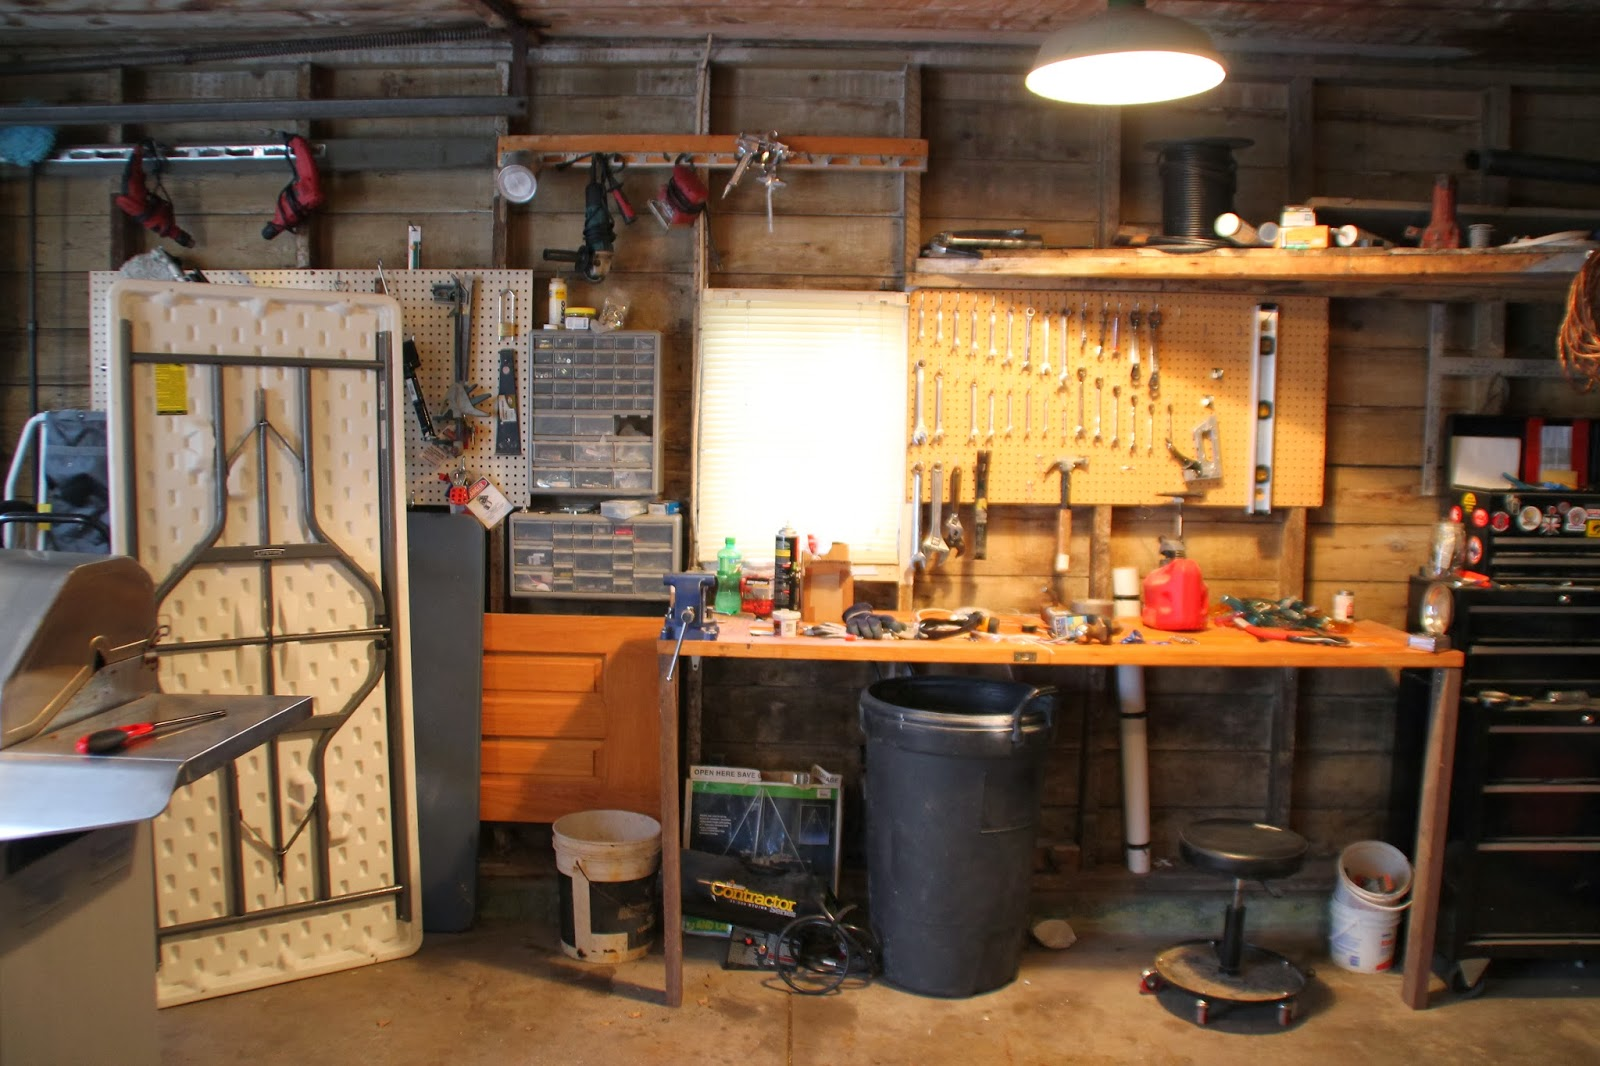 And This Is What His Garage Looks Like Now After The Installation To Install Wood Stove